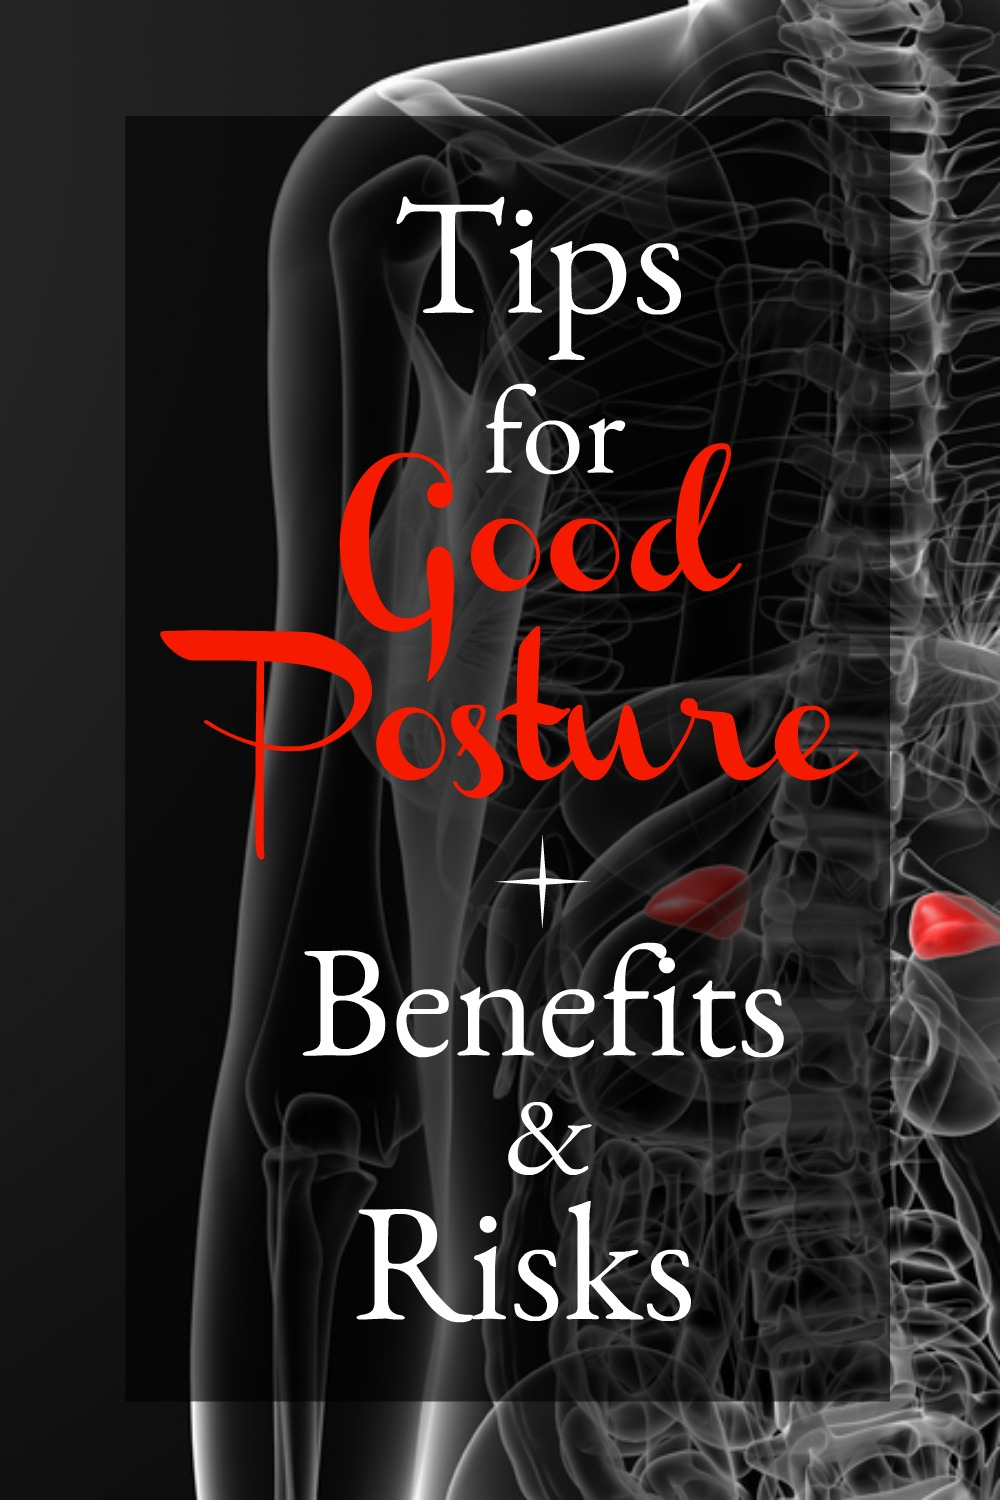 good posture benefits your health and self-confidence